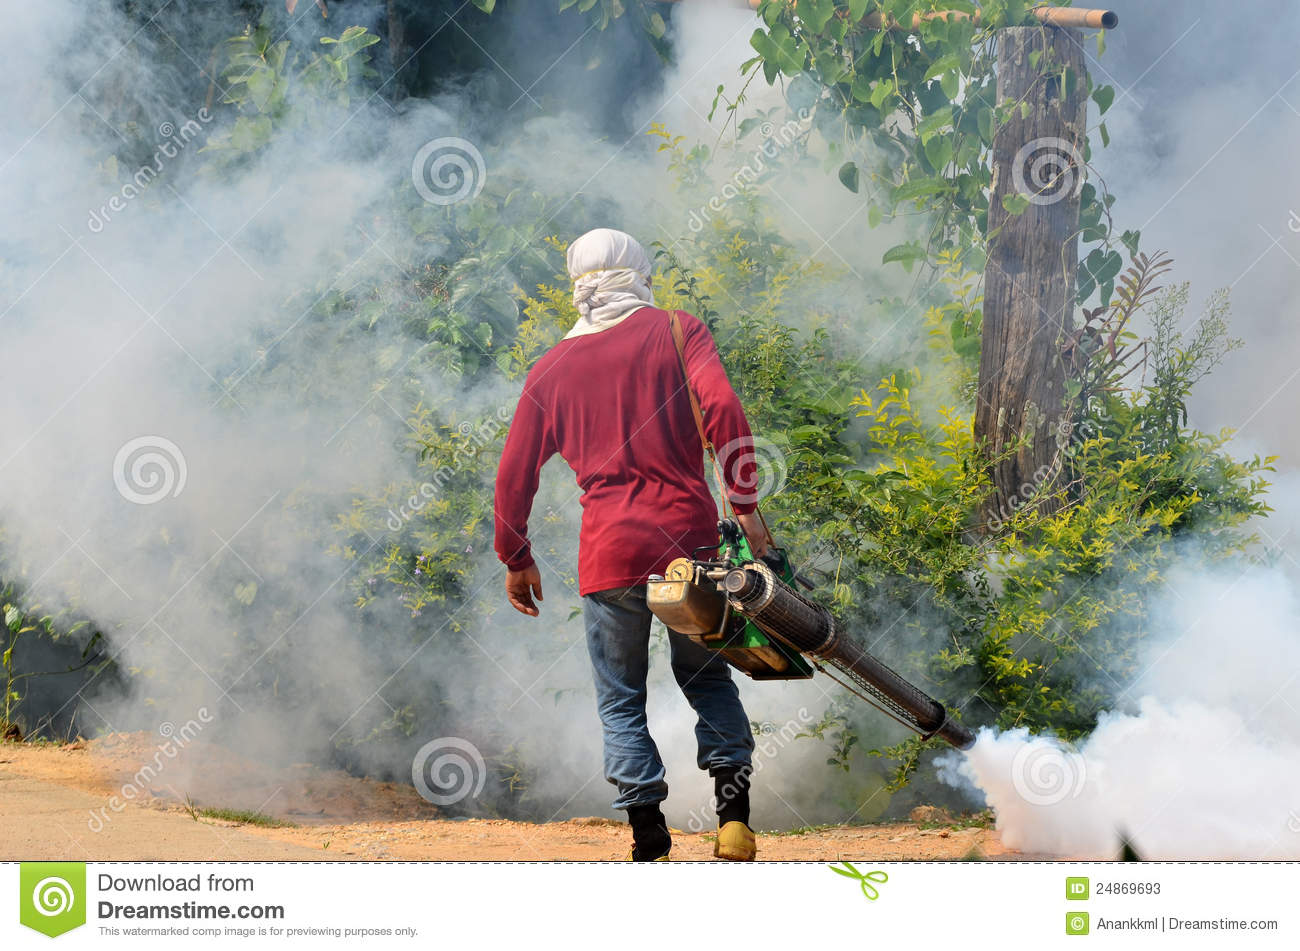 Fogging To Prevent Spread Of Dengue Fever Stock Photos.